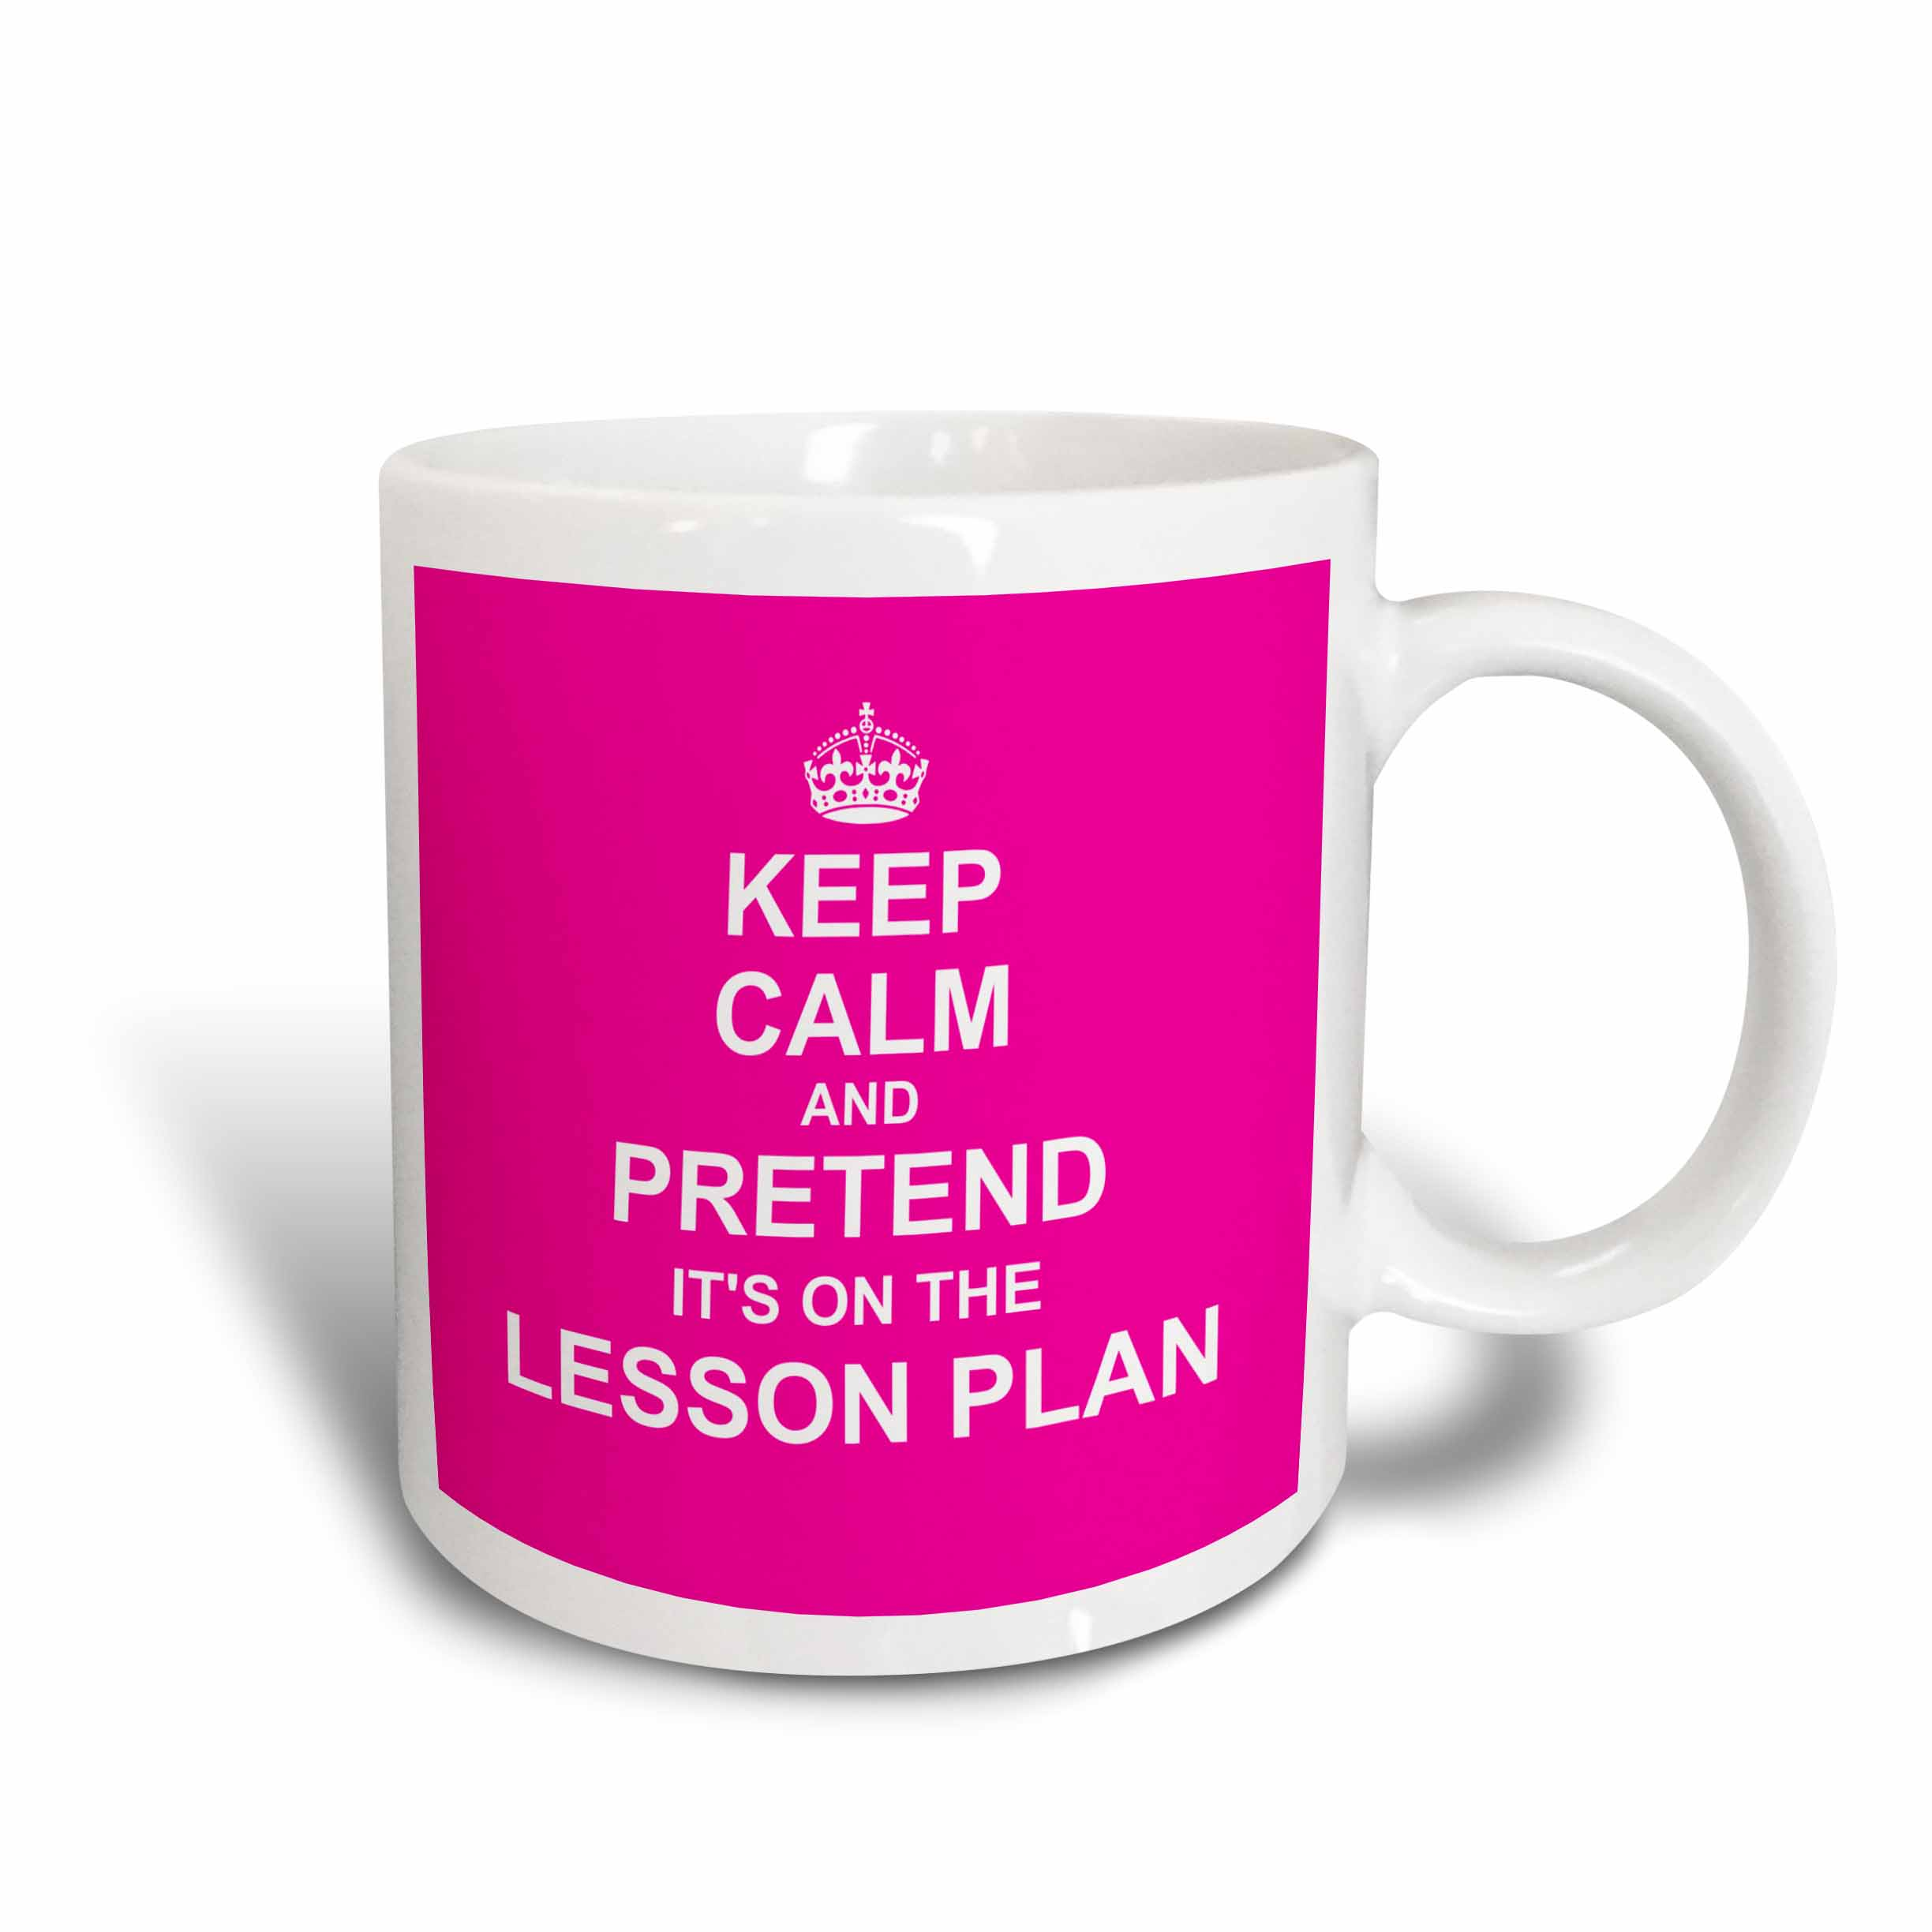 3drose Hot Pink Keep Calm And Pretend Its On The Lesson